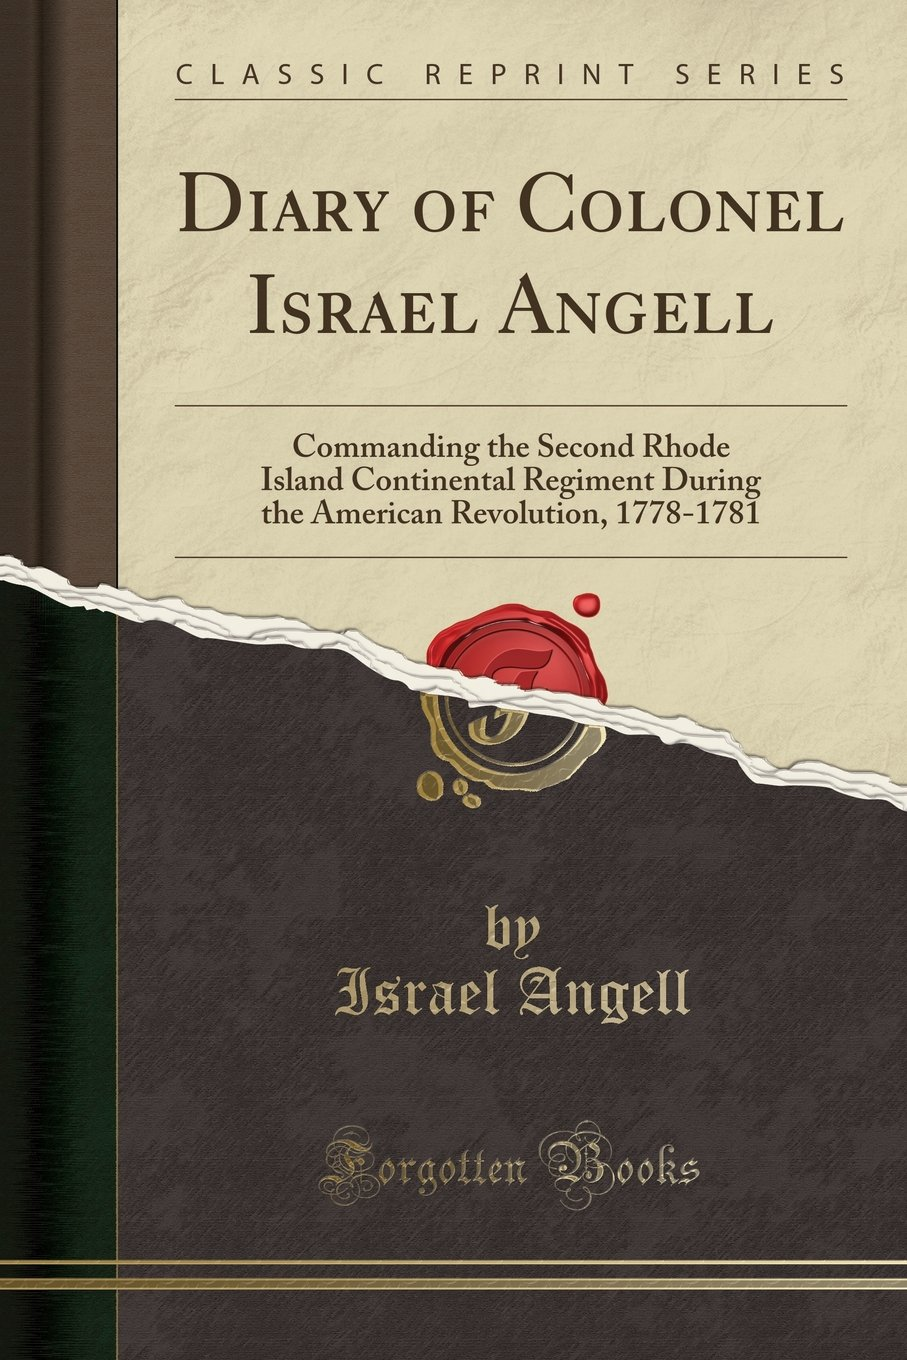 Diary of Colonel Israel Angell: Commanding the Second Rhode Island Continental Regiment During the American Revolution, 1778-1781 (Classic Reprint)